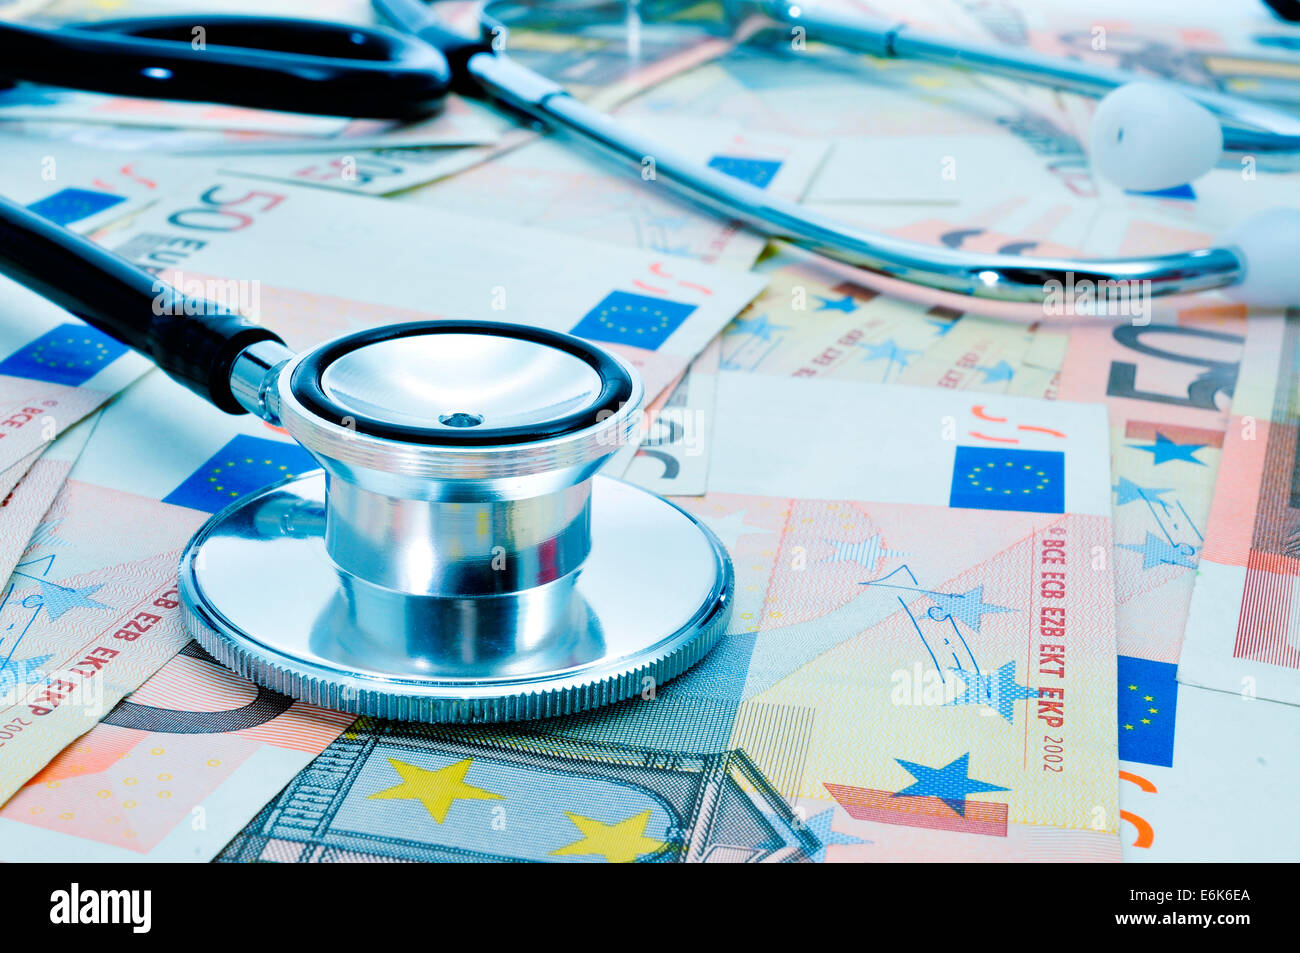 a stethoscope on a pile of euro bills, depicting the health care industry concept - Stock Image